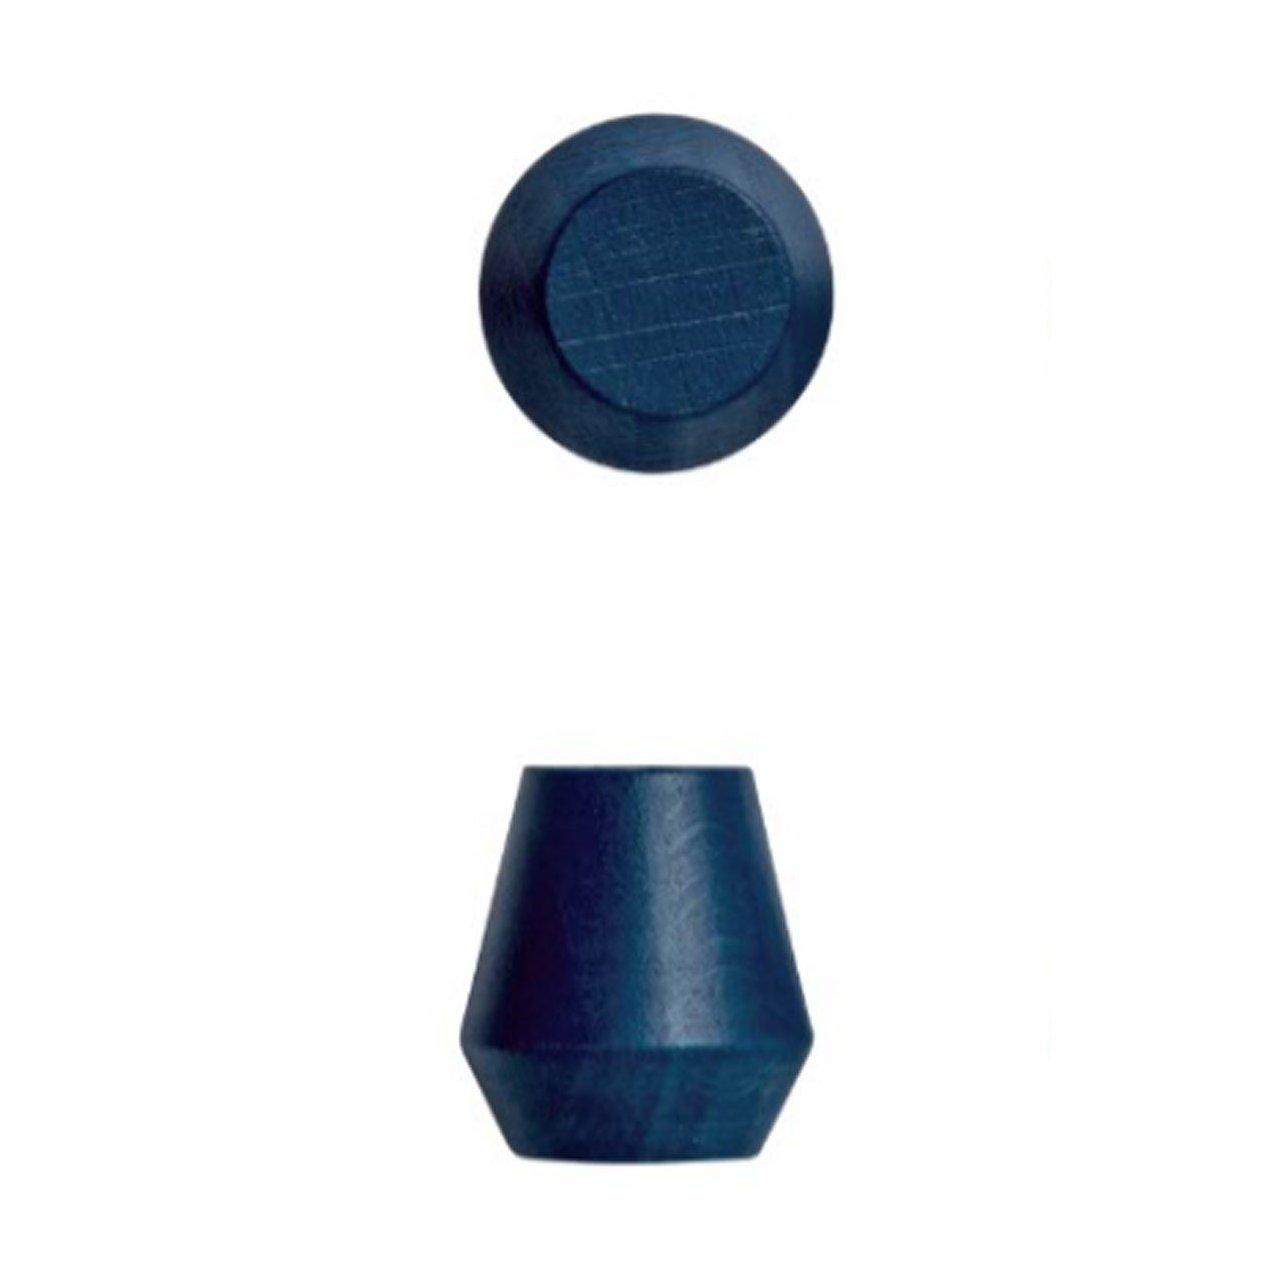 Saki Hook - 2 Pcs/Set - Dark Blue